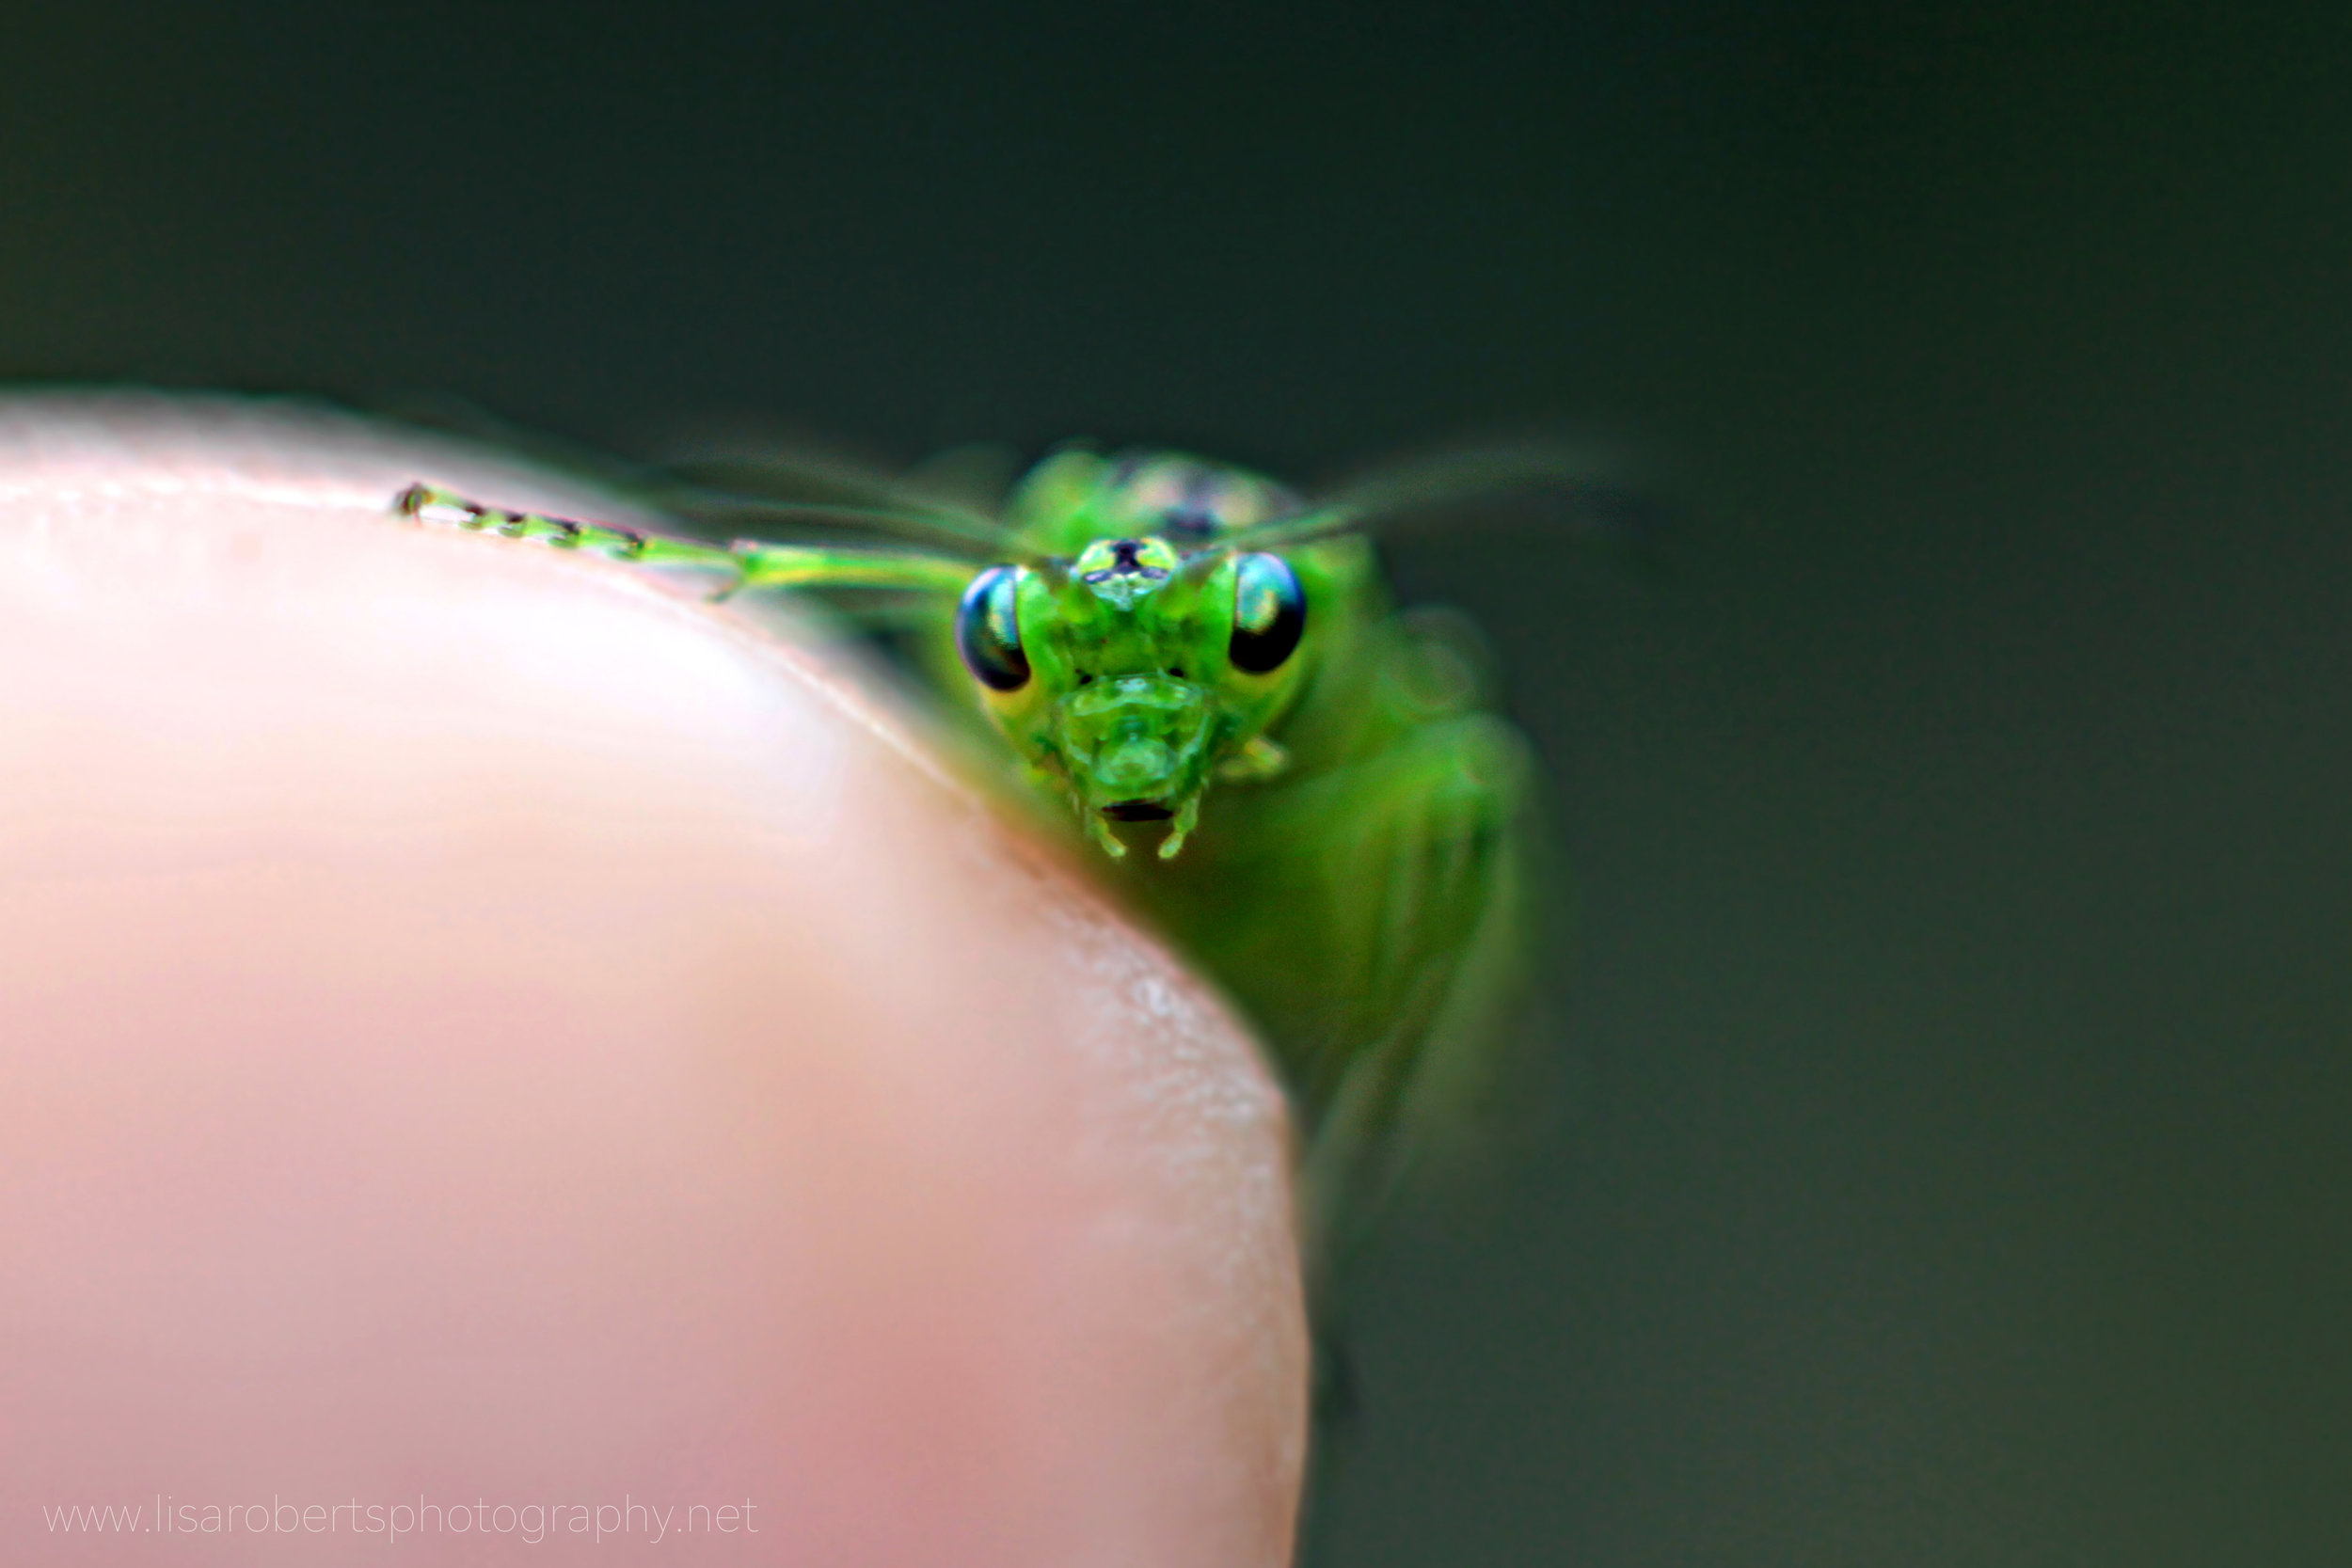 Green Sawfly on finger tip